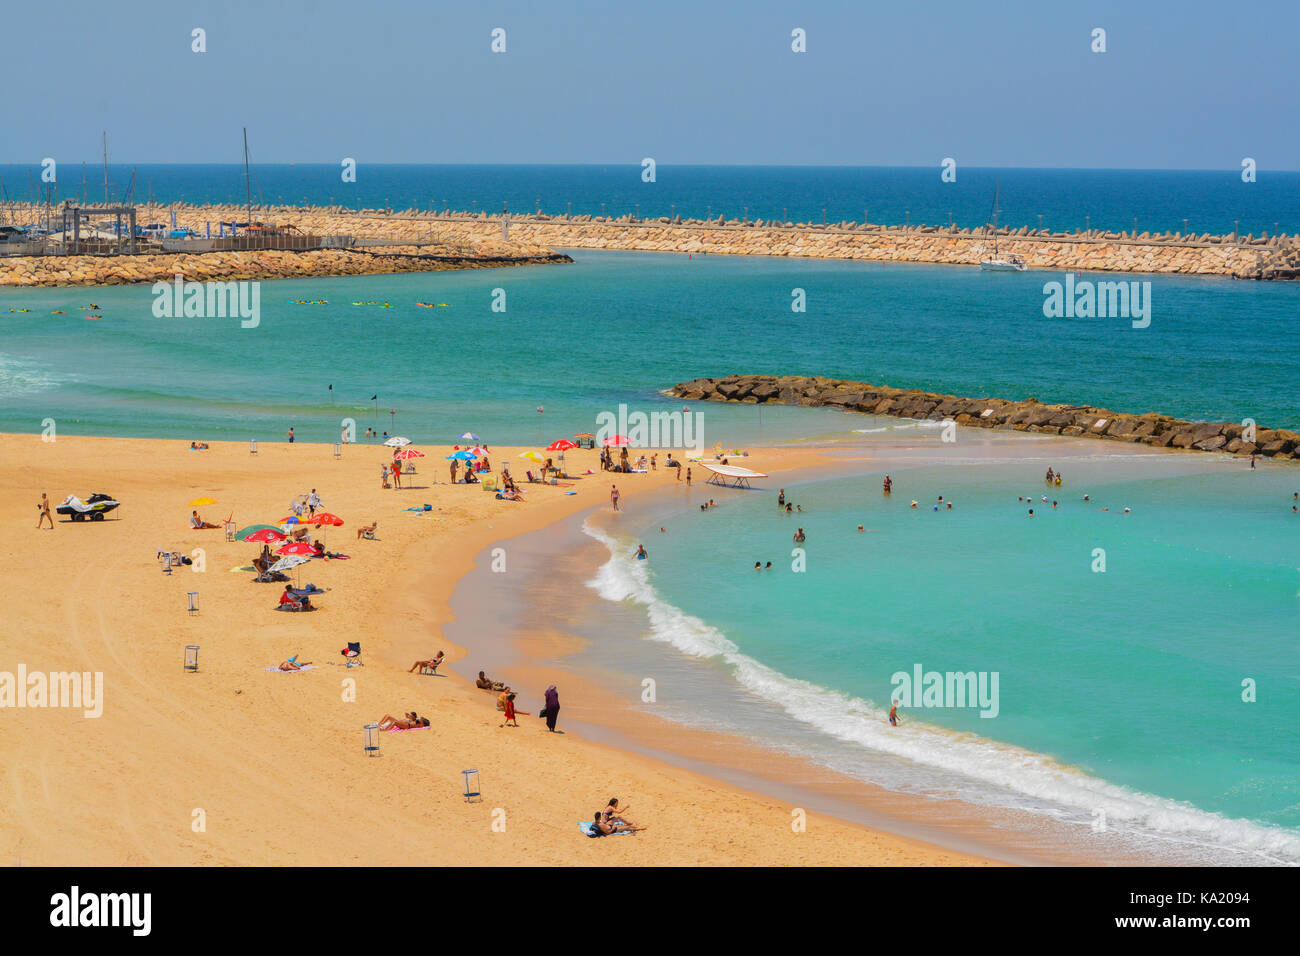 The Mediterranean beach in Ashkelon, Israel Stock Photo